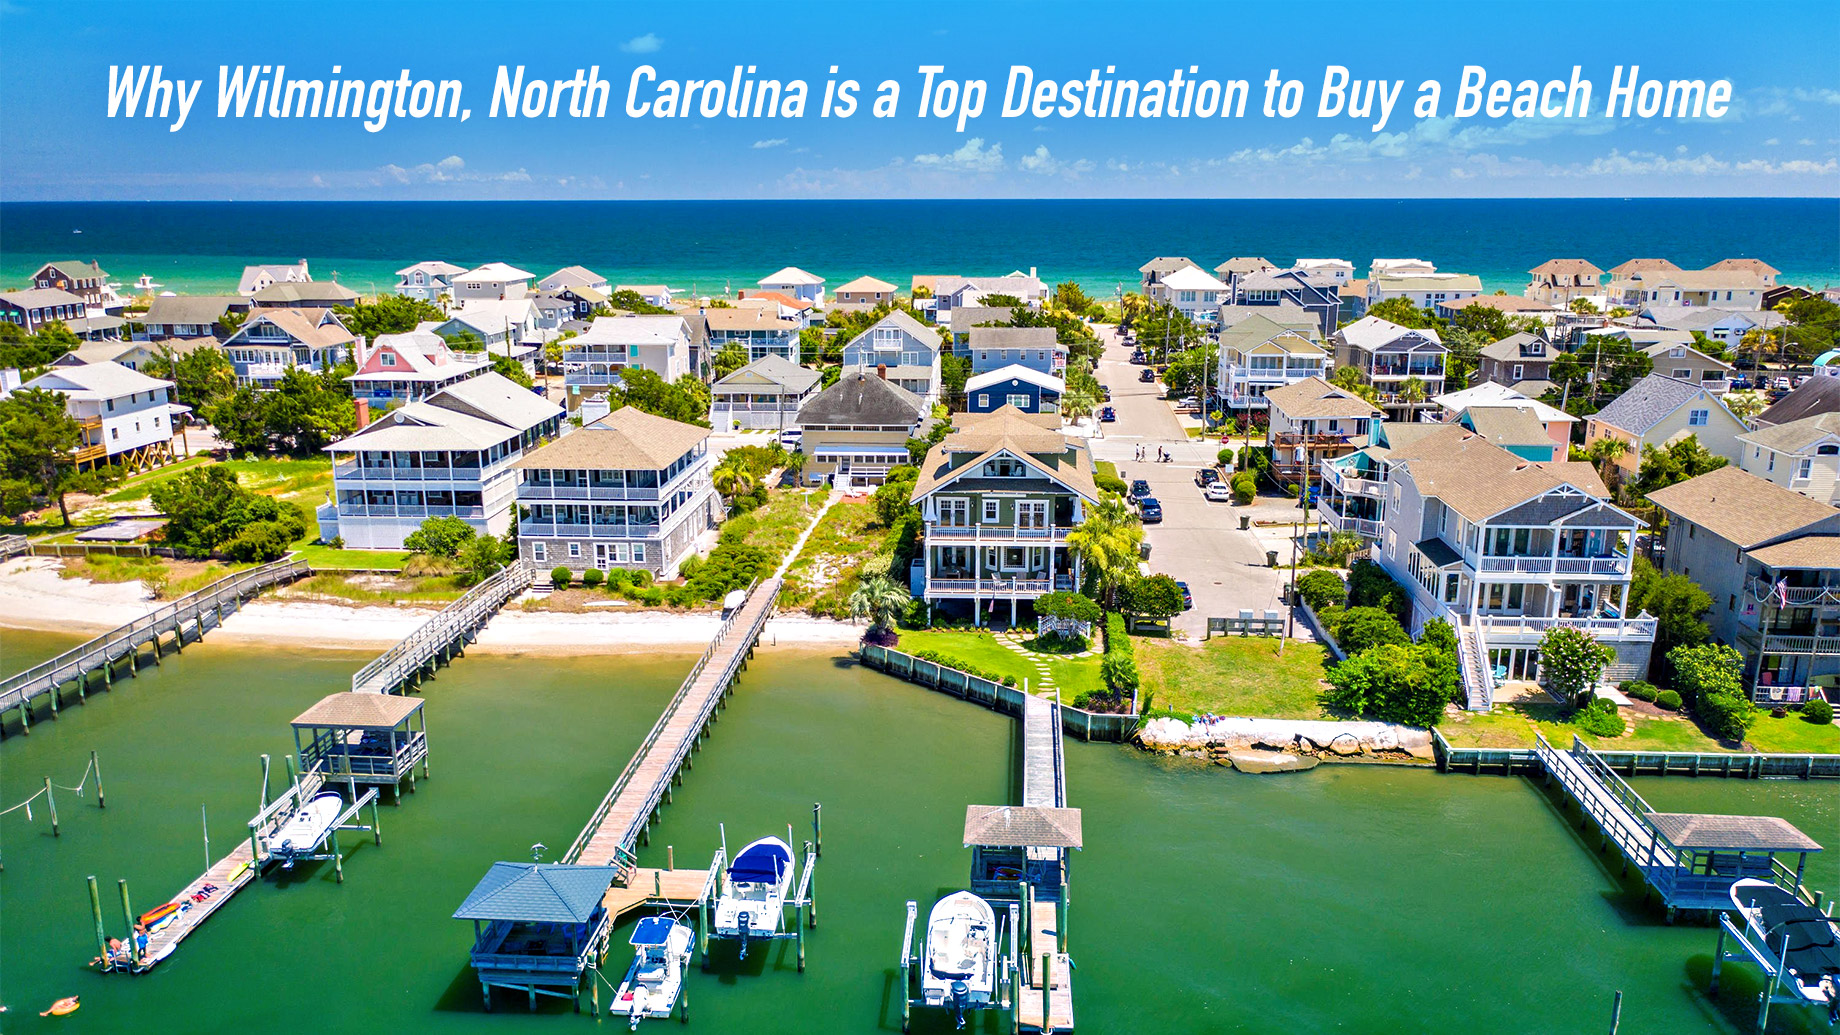 Why WilmingWhy Wilmington, North Carolina is a Top Destination to Buy a Beach Hometon, North Carolina is a Top Destination to Buy a Beach Home